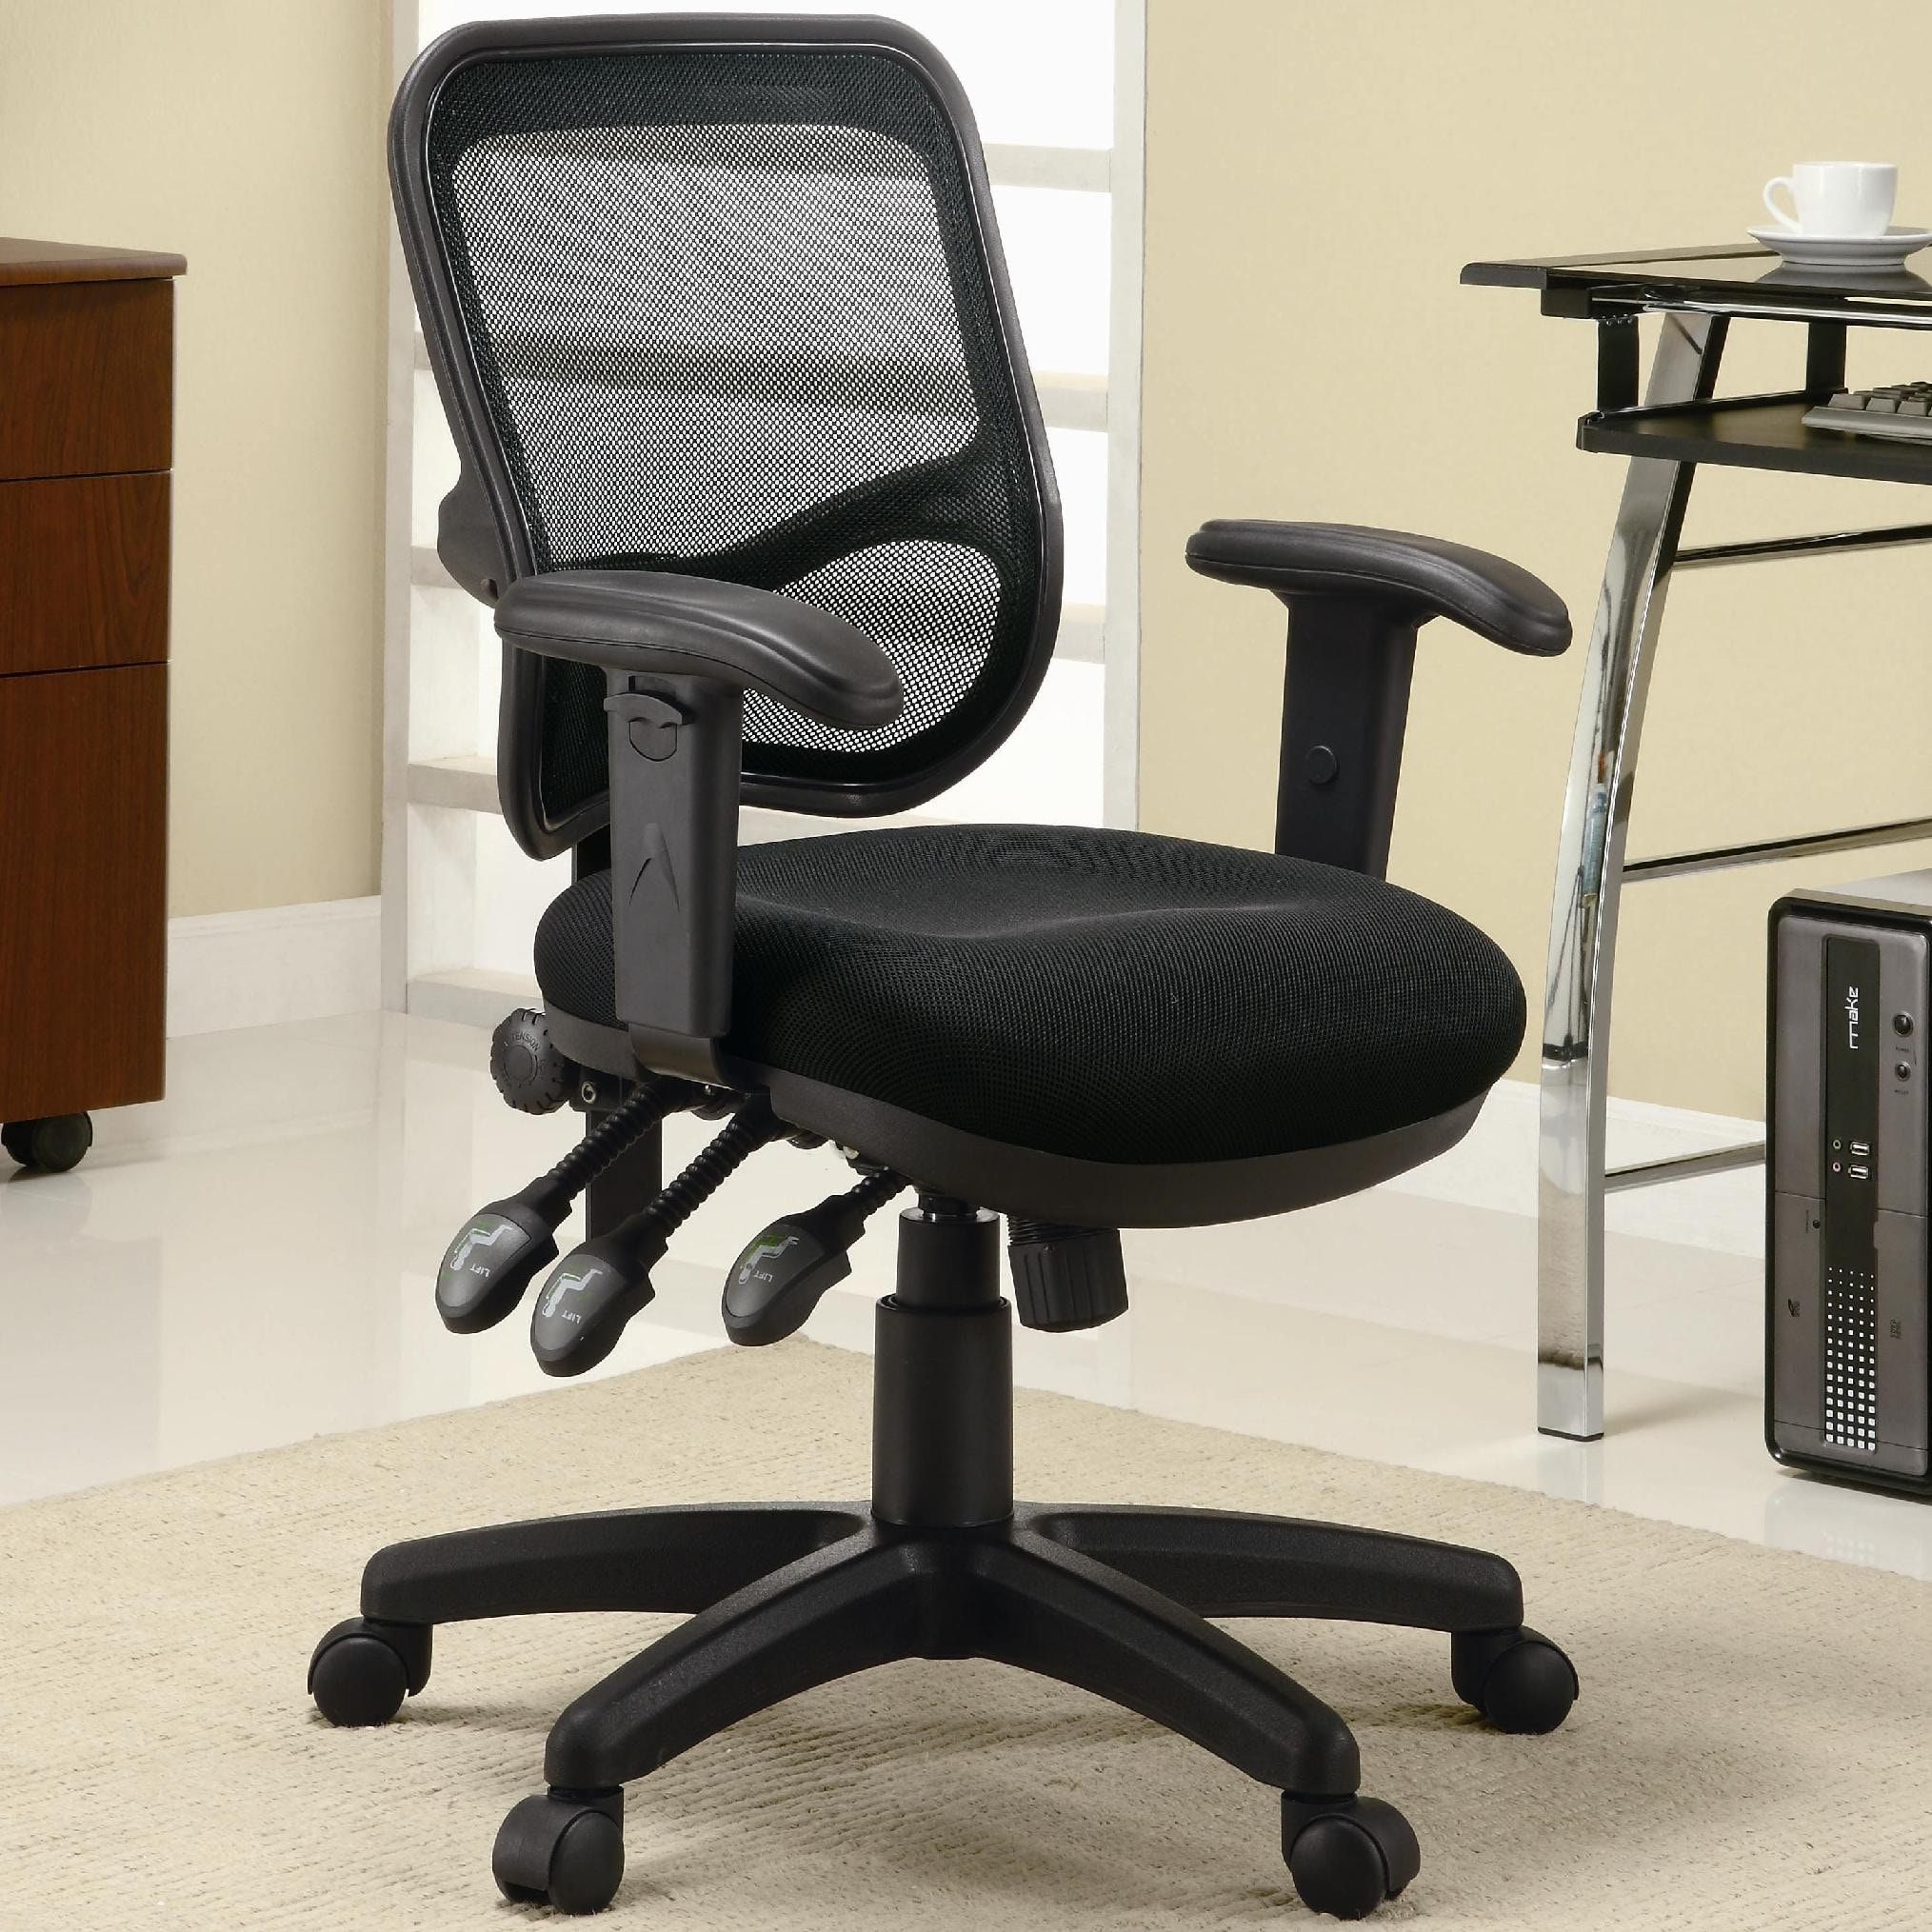 Coaster Home Office Office Chair 800019   The Furniture Mall   Duluth,  Doraville, Kennesaw And The Chamblee, GA